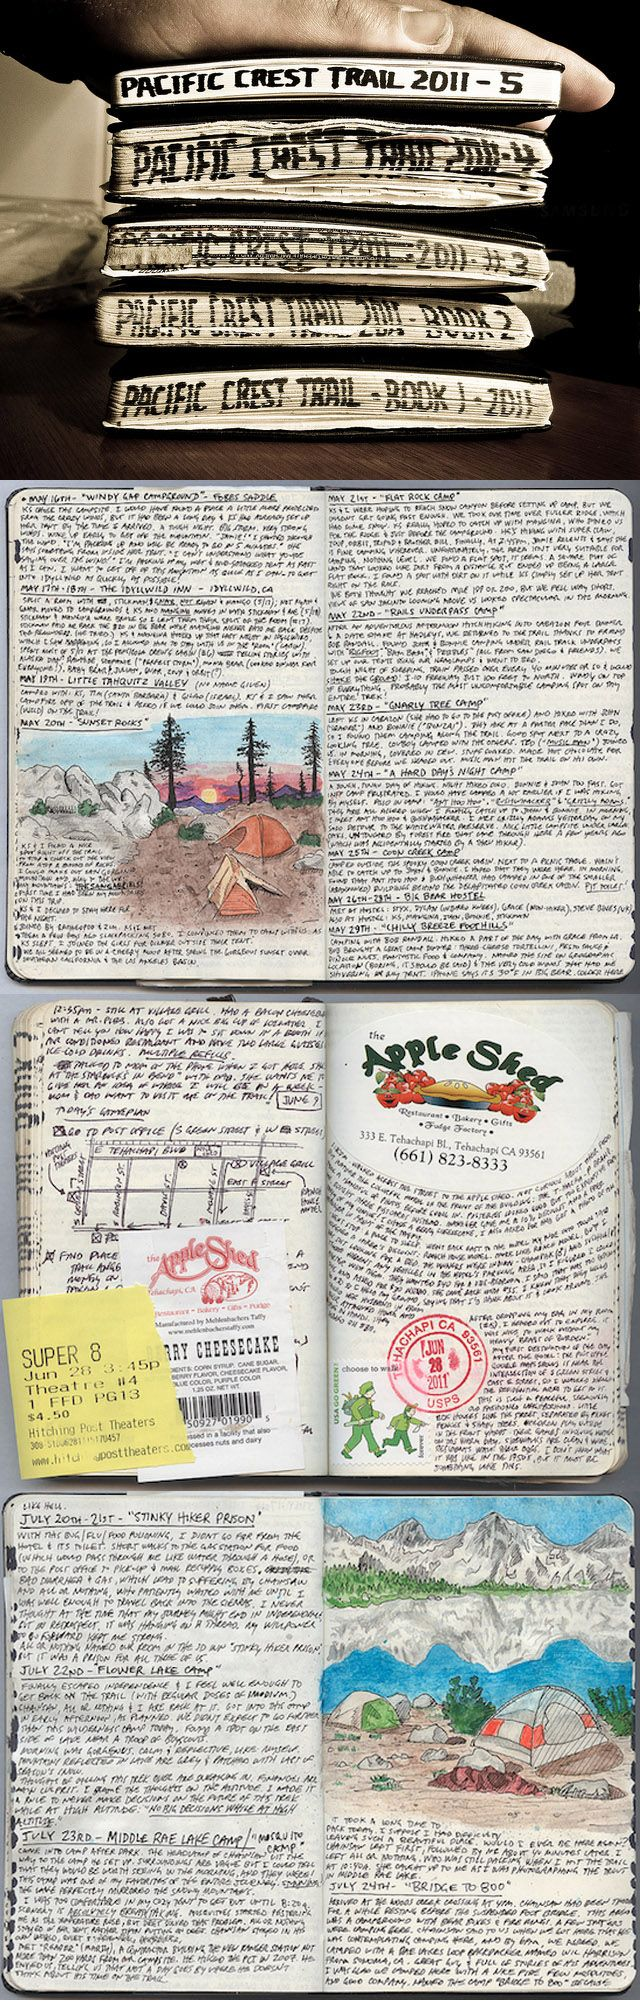 After being laid off from his job in April 2011, Kolby Kirk (The Hike Guy) decided he would attempt to complete as much as he could of the 2,650-mile PCT. In that time, Kolby wrote 850 pages in his journals. a few of which he has started to scan for a major dose of visual stimulation. The pages are filled with charts, drawings, receipts, beer labels (nice), stamps, crushed poison oak...